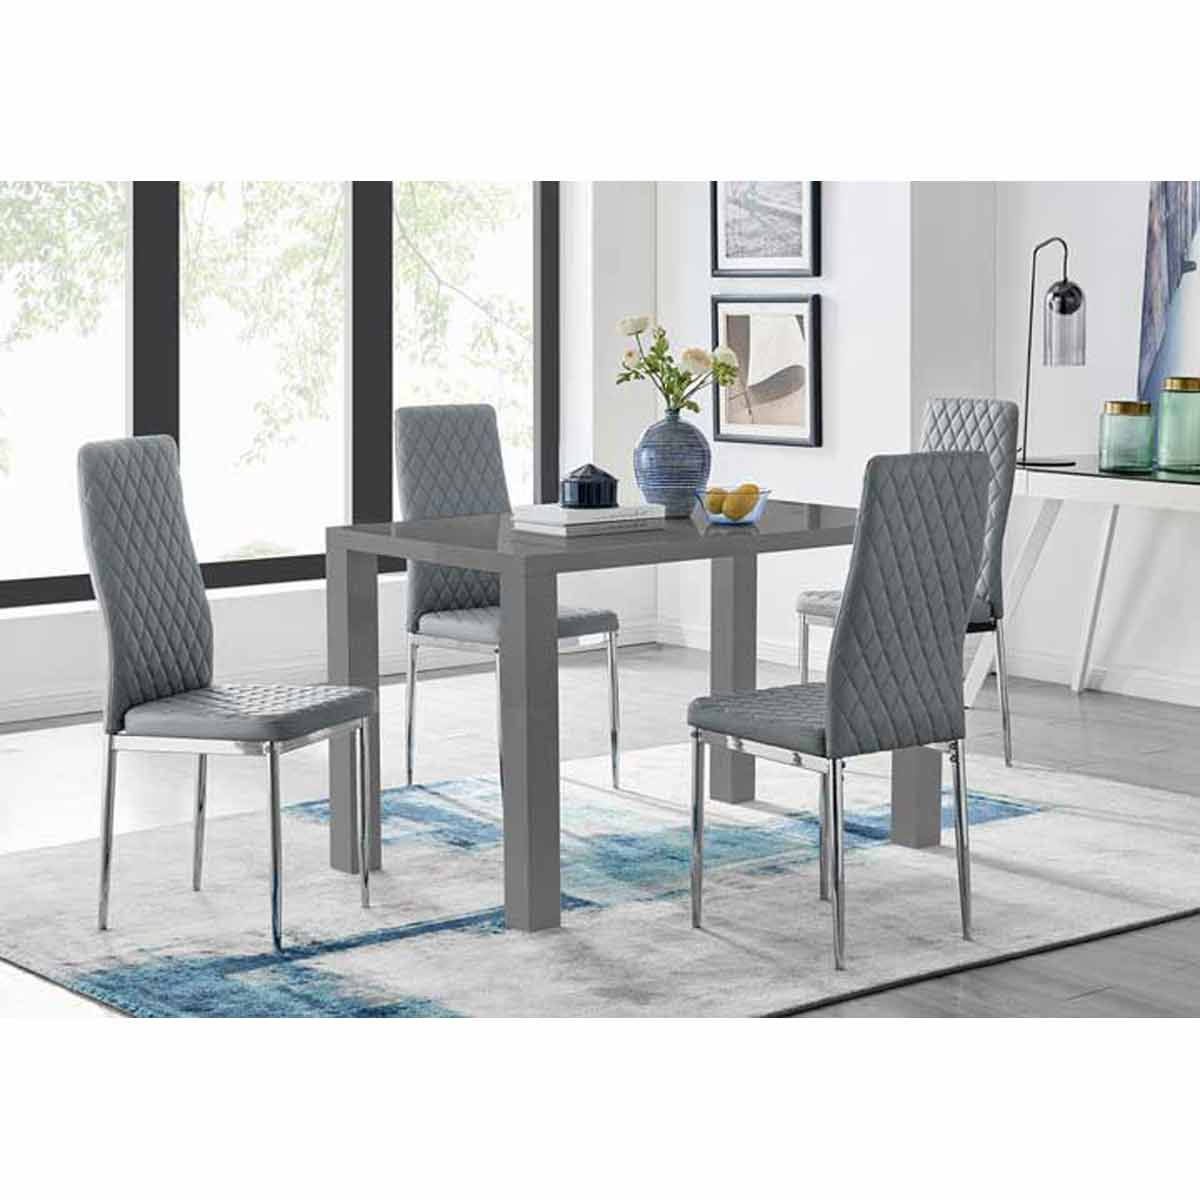 Furniture Box Pivero 4 Grey High Gloss Dining Table And 4 Modern Elephant Grey Milan Chairs Set